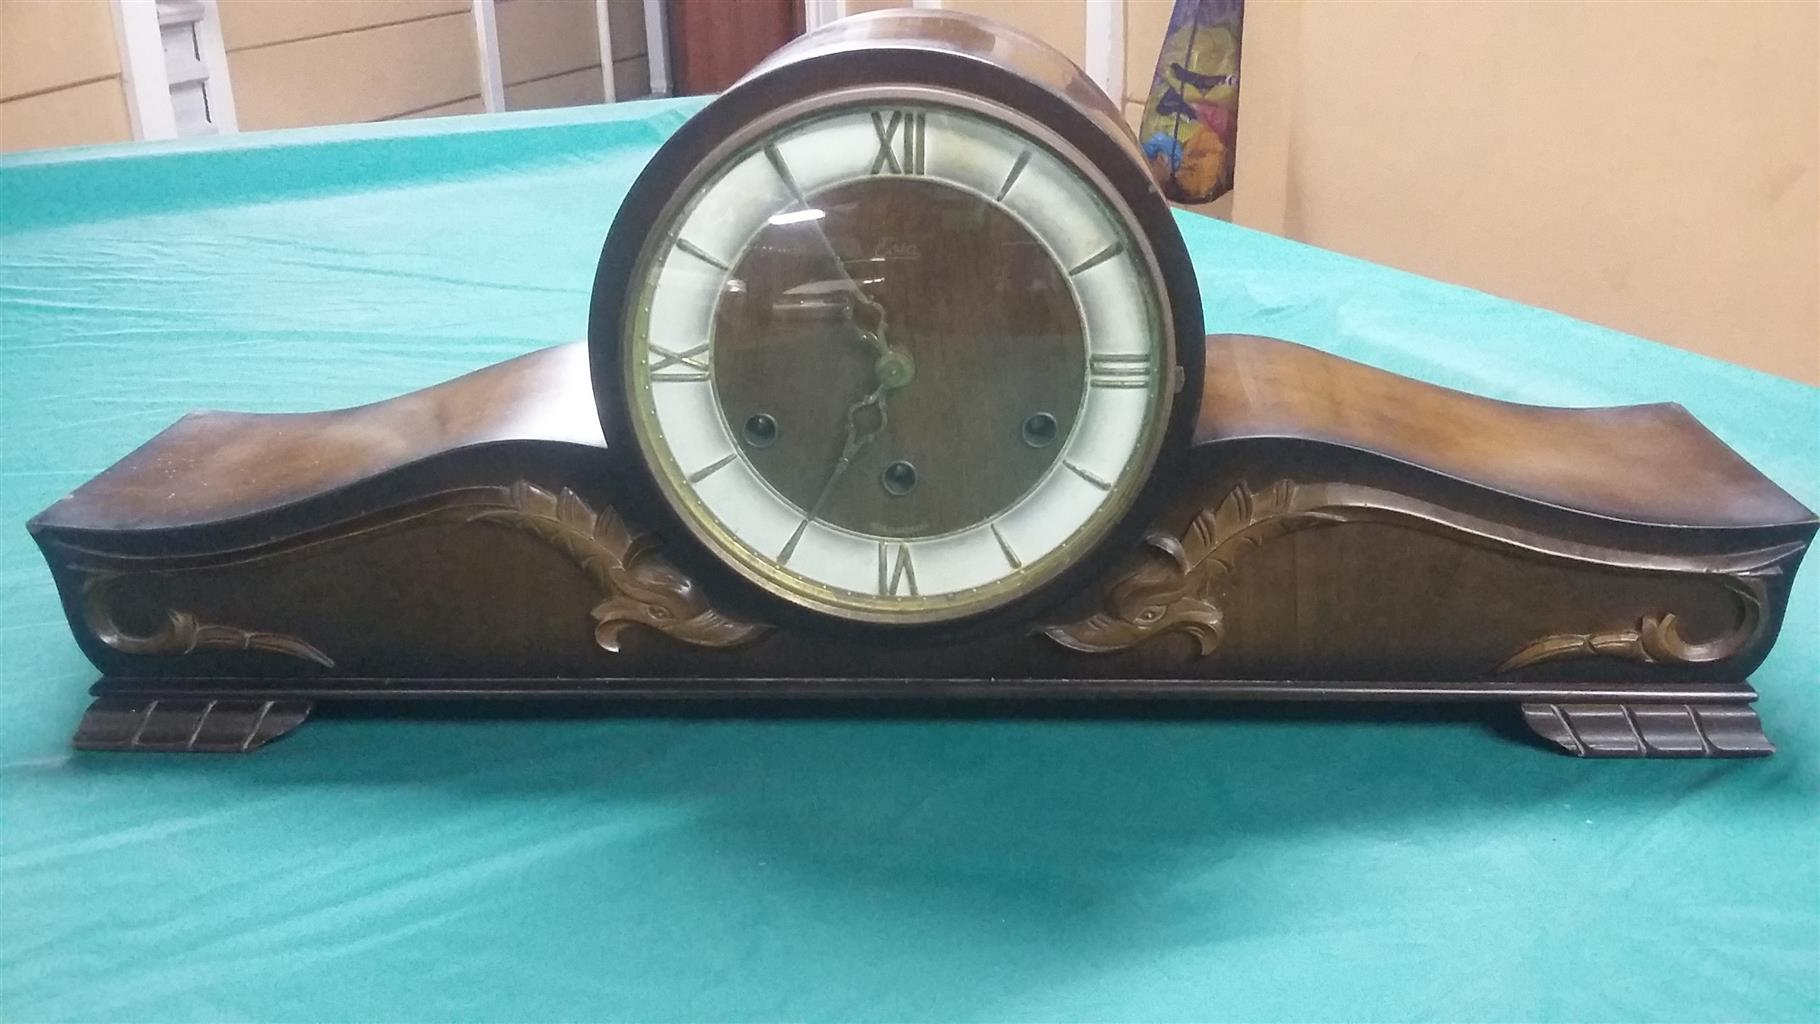 Antique clock that chimes every 15 minuntes to the hour with key